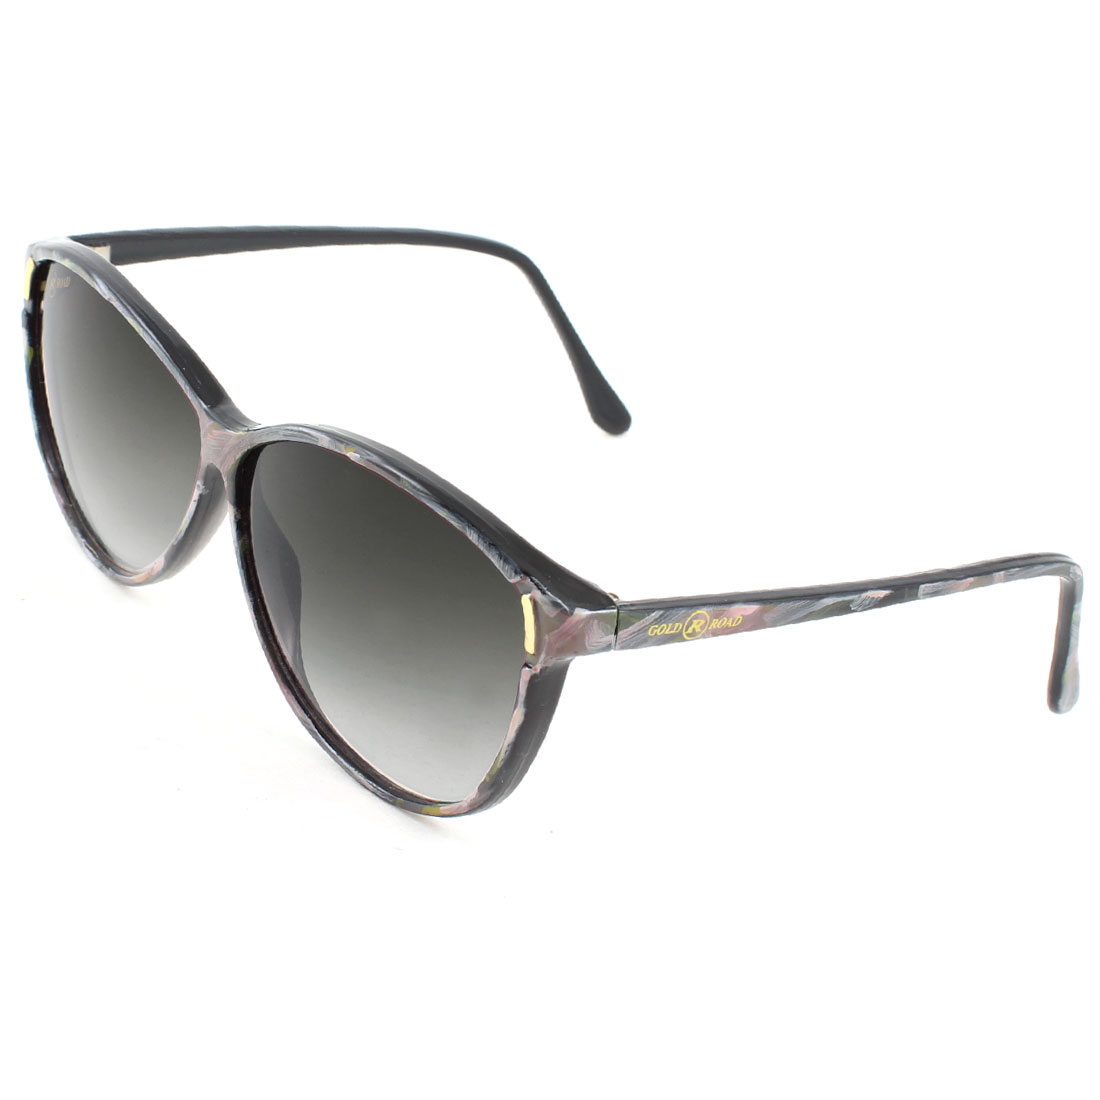 Gray Printed Arms Full Frame Black Lenses Plastic Sunglasses for Woman Lady